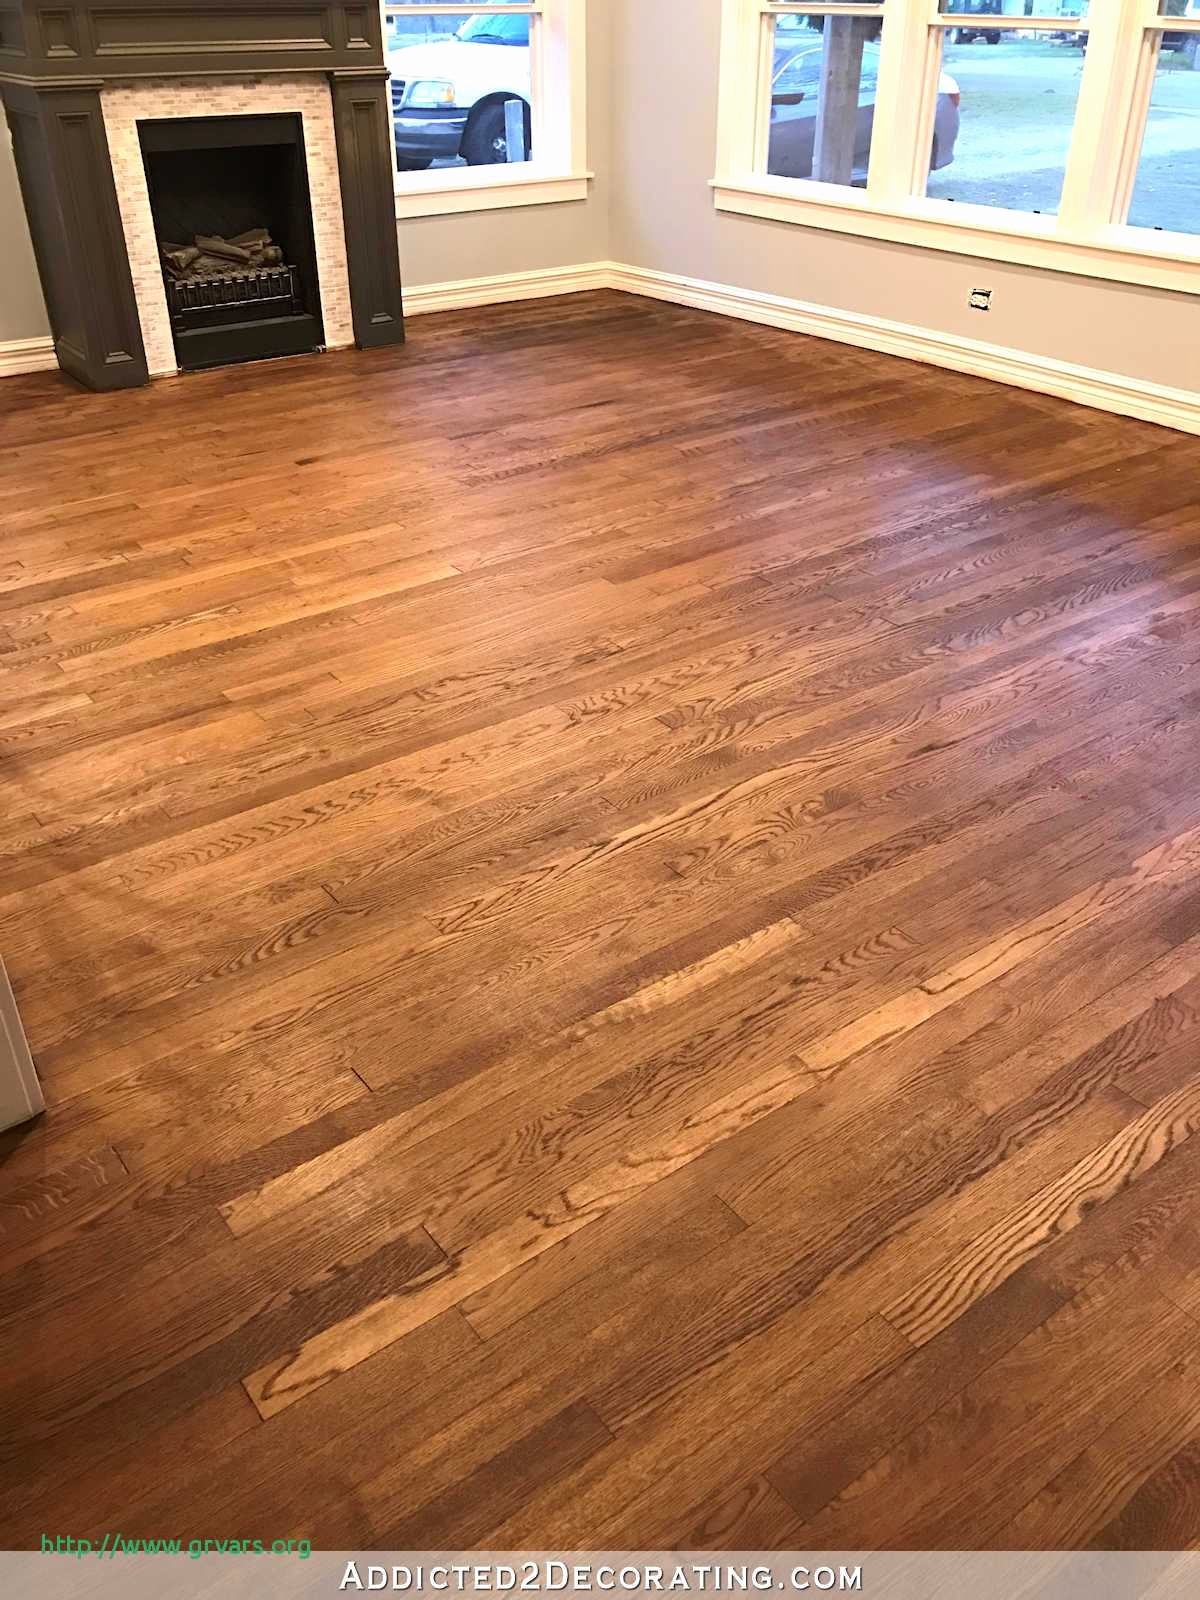 hardwood floor cost estimate calculator of 60 elegant the best of stained concrete floor cost calculator inside staining red oak hardwood floors 8a living room and entryway